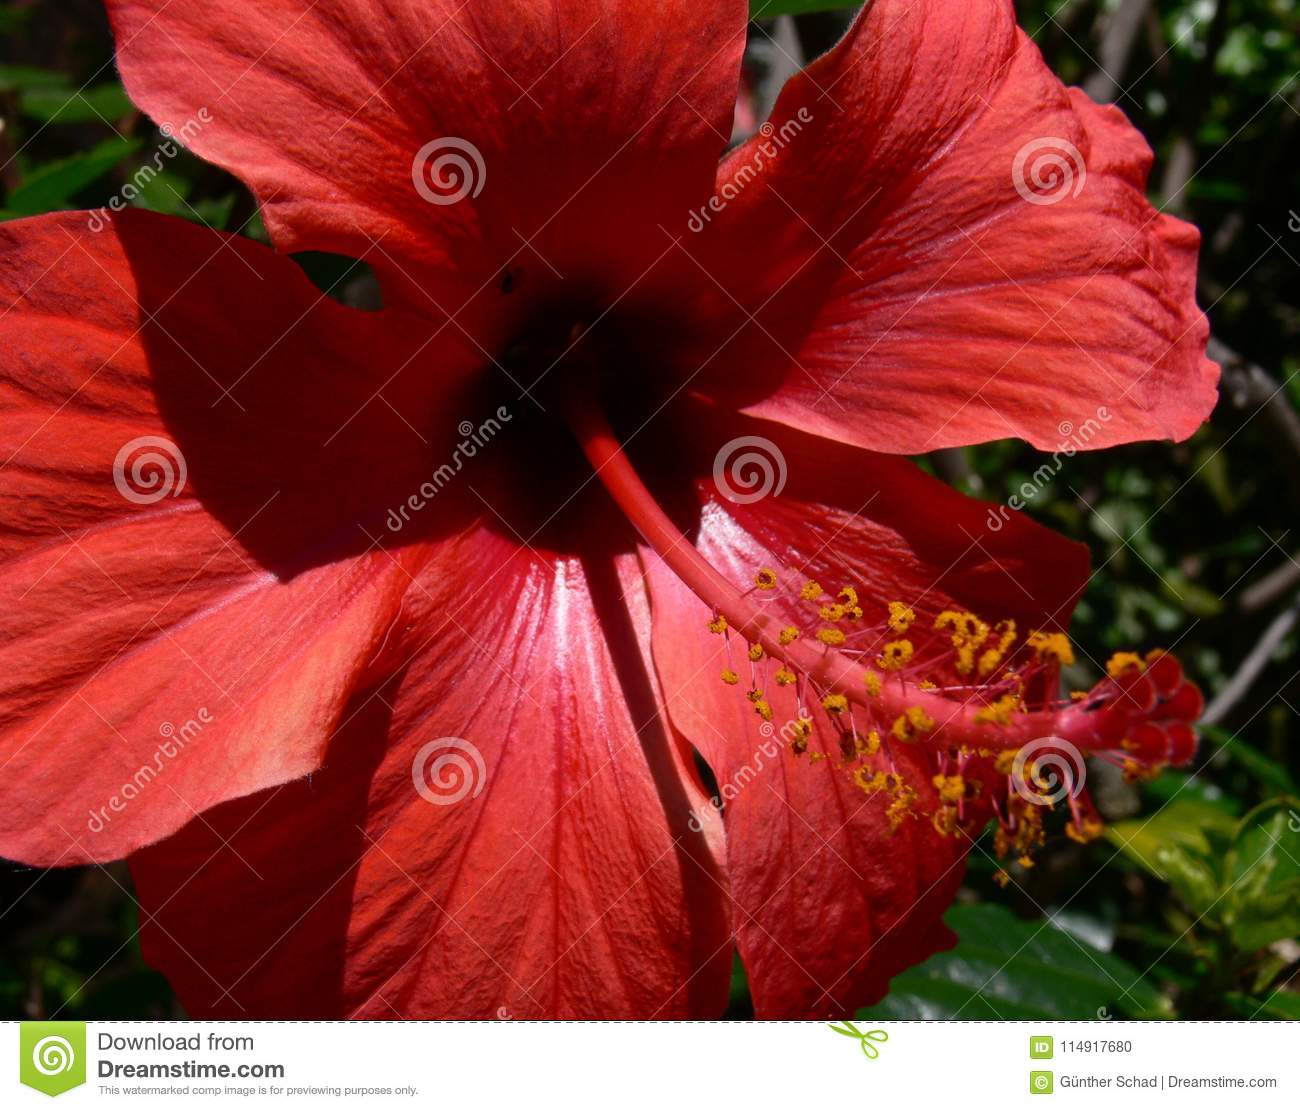 Hibiscus flower with pistil stamp ii stock photo image of garden royalty free stock photo izmirmasajfo